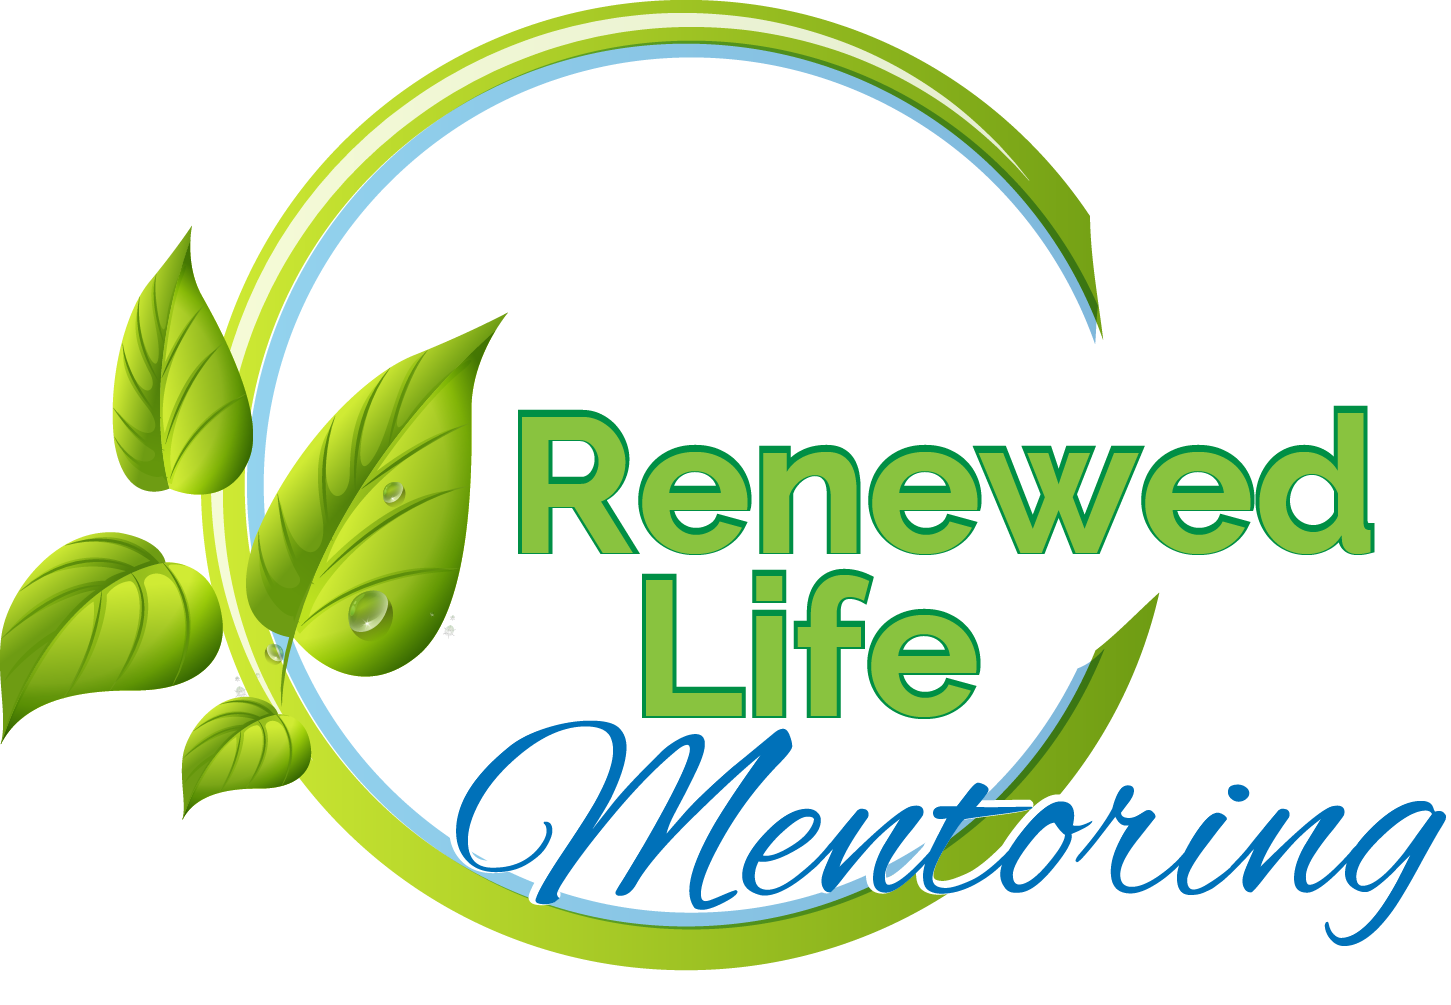 Welcome to Renewed Life!